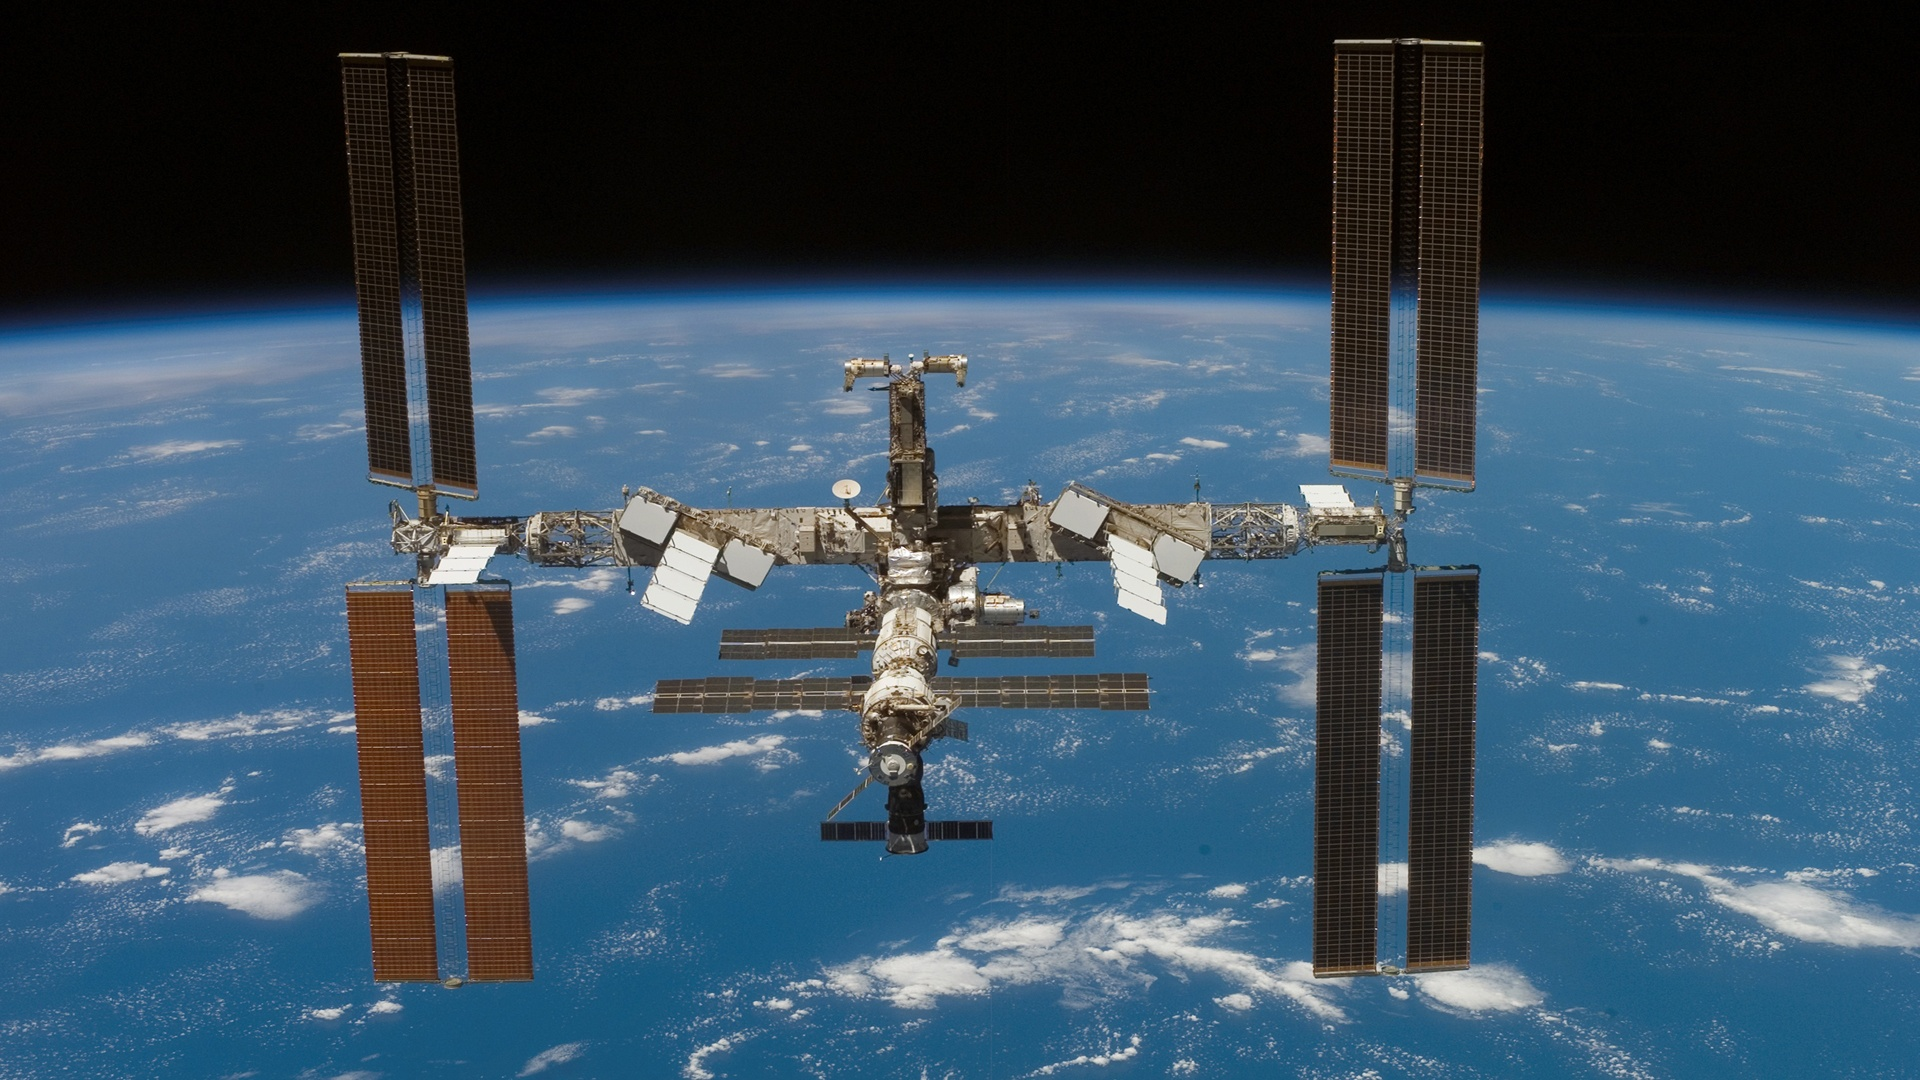 Iss Over Earth Wallpaper   Iss Space Station   15x15 ...